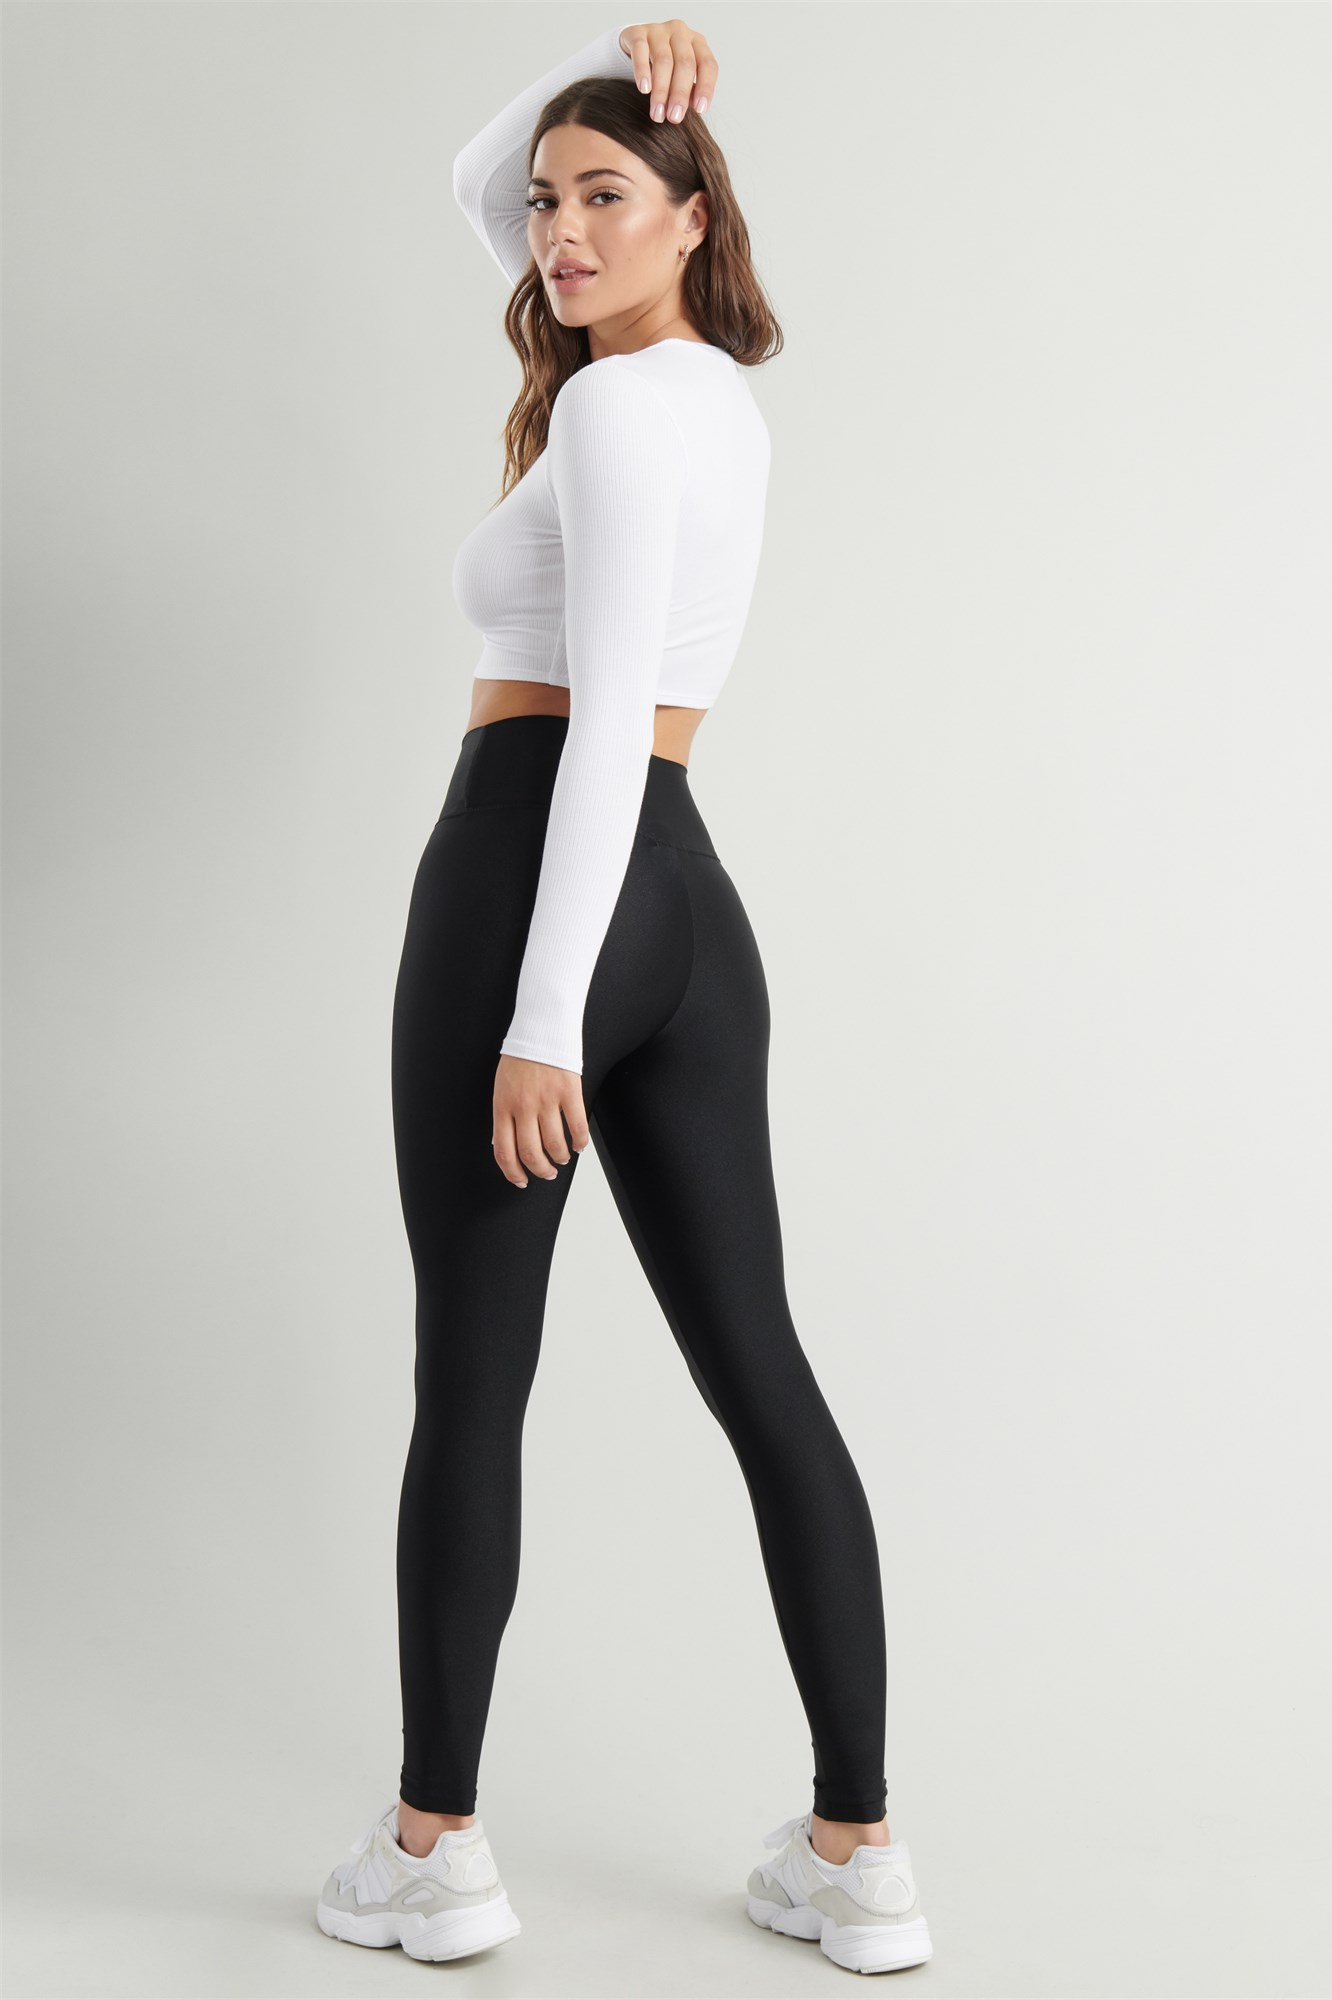 Image 3 of Luxe Shiny High Rise Legging